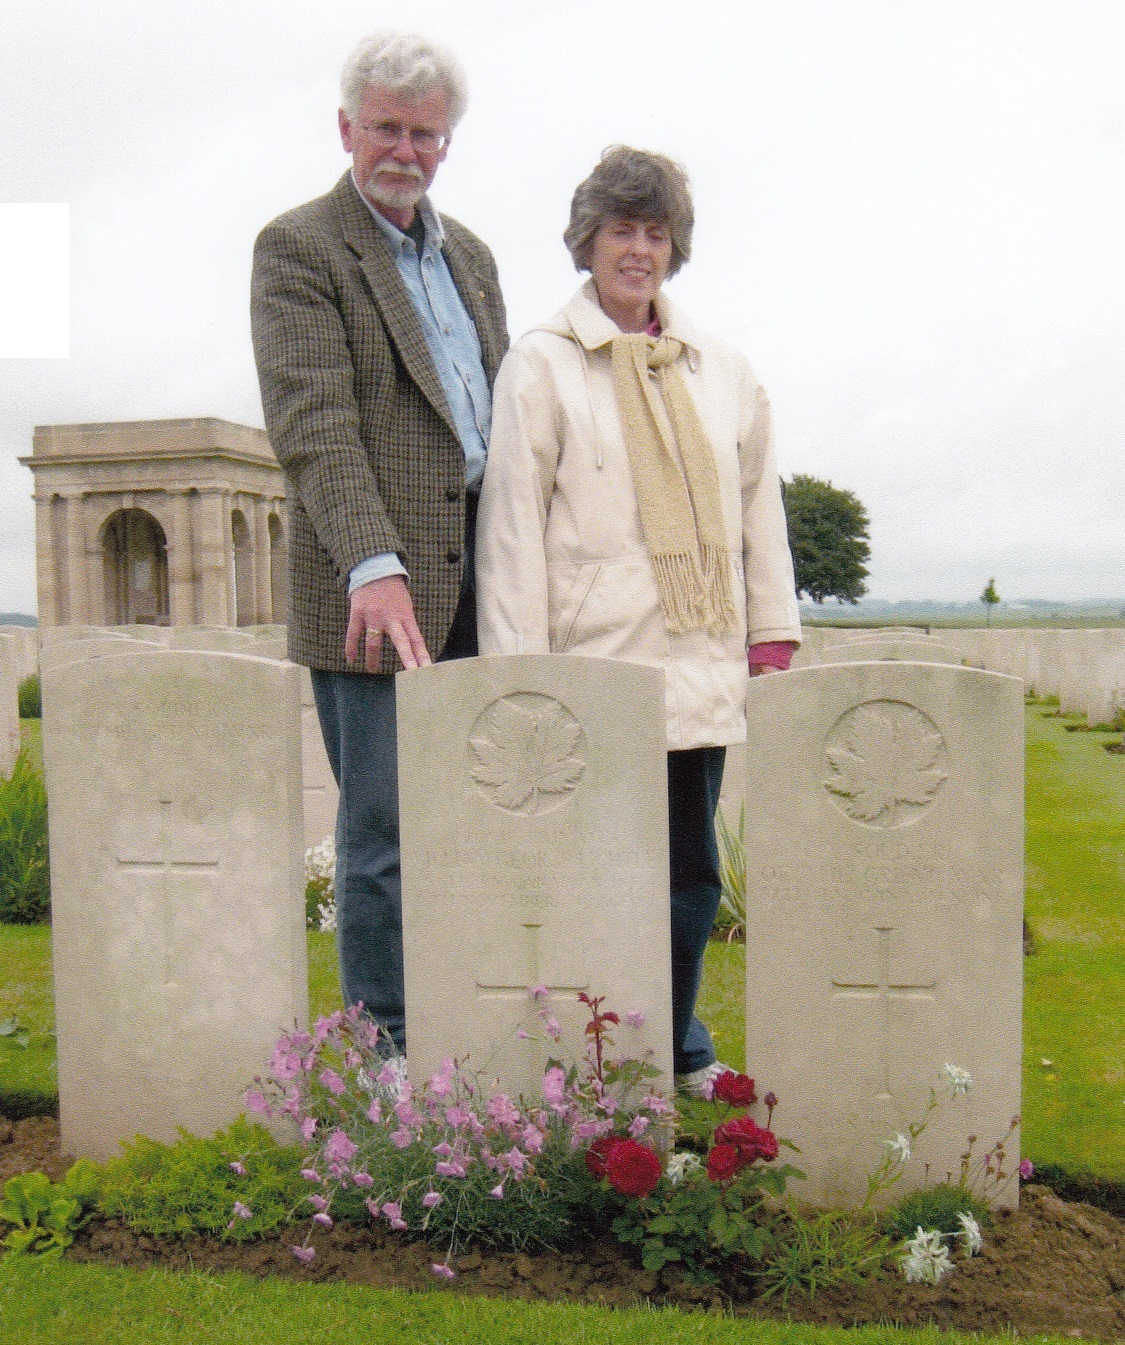 Peter and Barbara at the grave of  William George Lightle, France